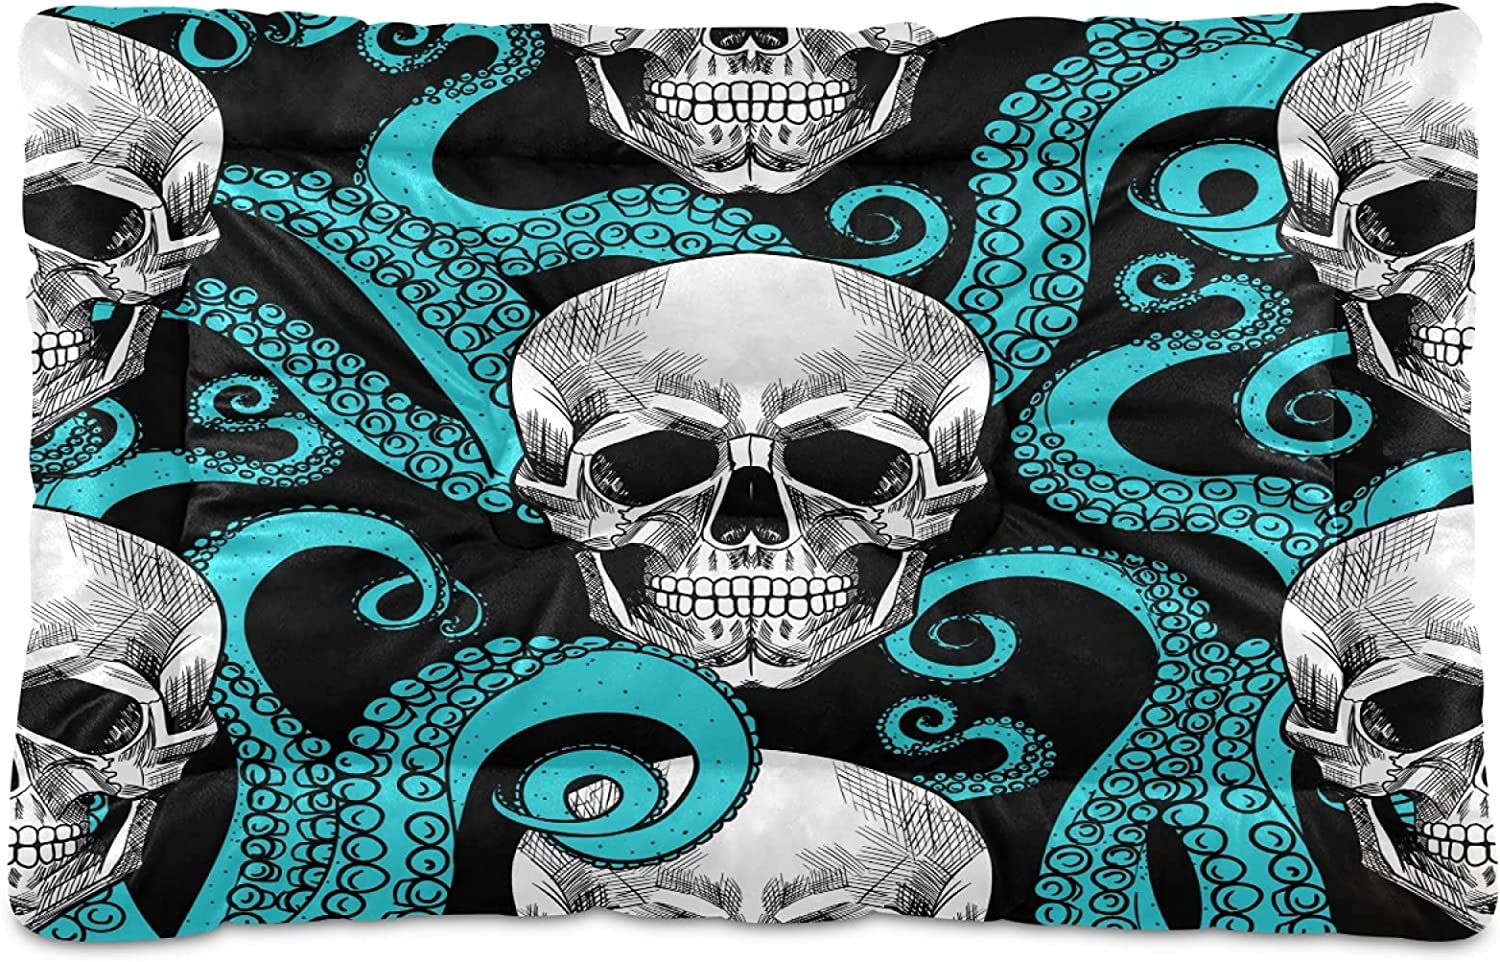 Soft Octopus Human Skull Max 67% OFF OFFicial site Cool Pet Bed P Large Dog for Medium Cat